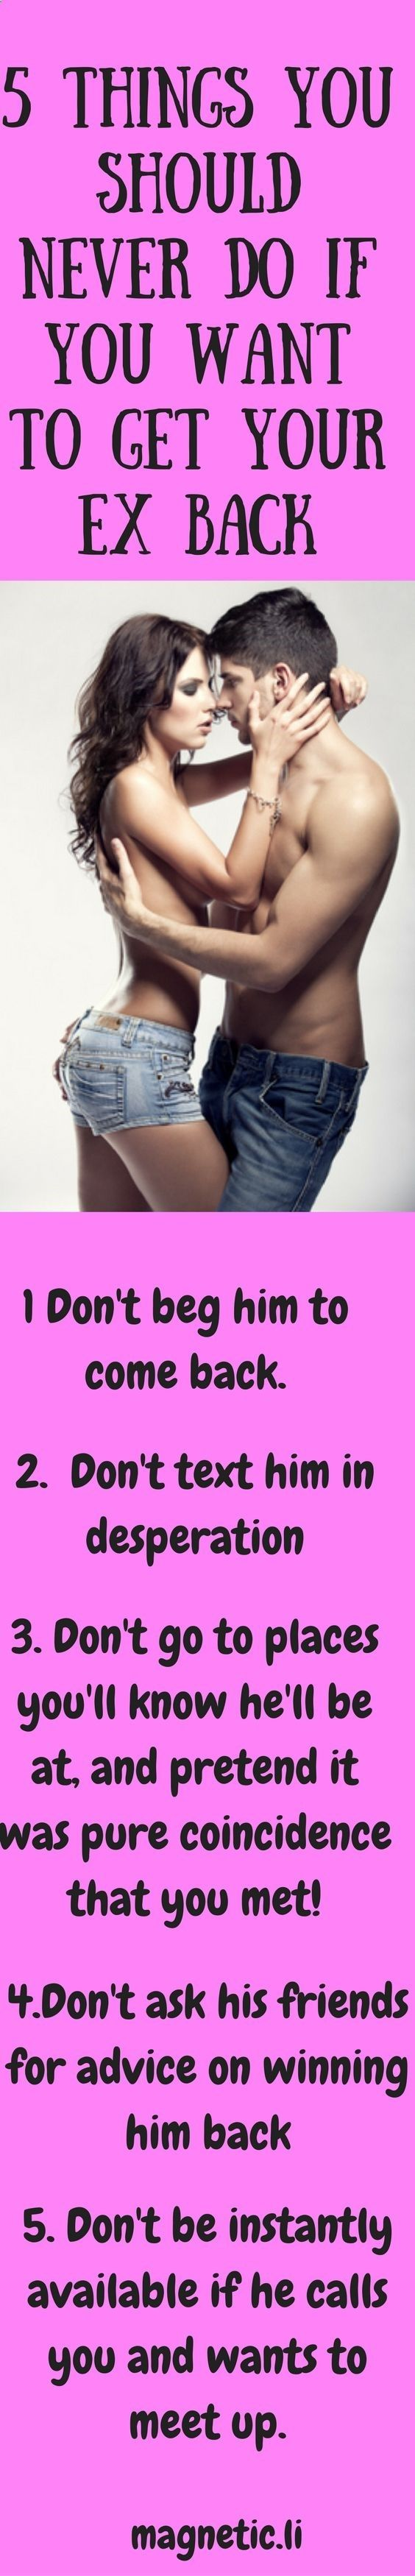 Getting Your Boyfriend Back - ts easy to make mistakes when youre desperate to get him back but dont despair! Read my blog post to discover how to get your ex back using the law of attraction. - How To Win Your Ex Back Free Video Presentation Reveals Secrets To Getting Your Boyfriend Back